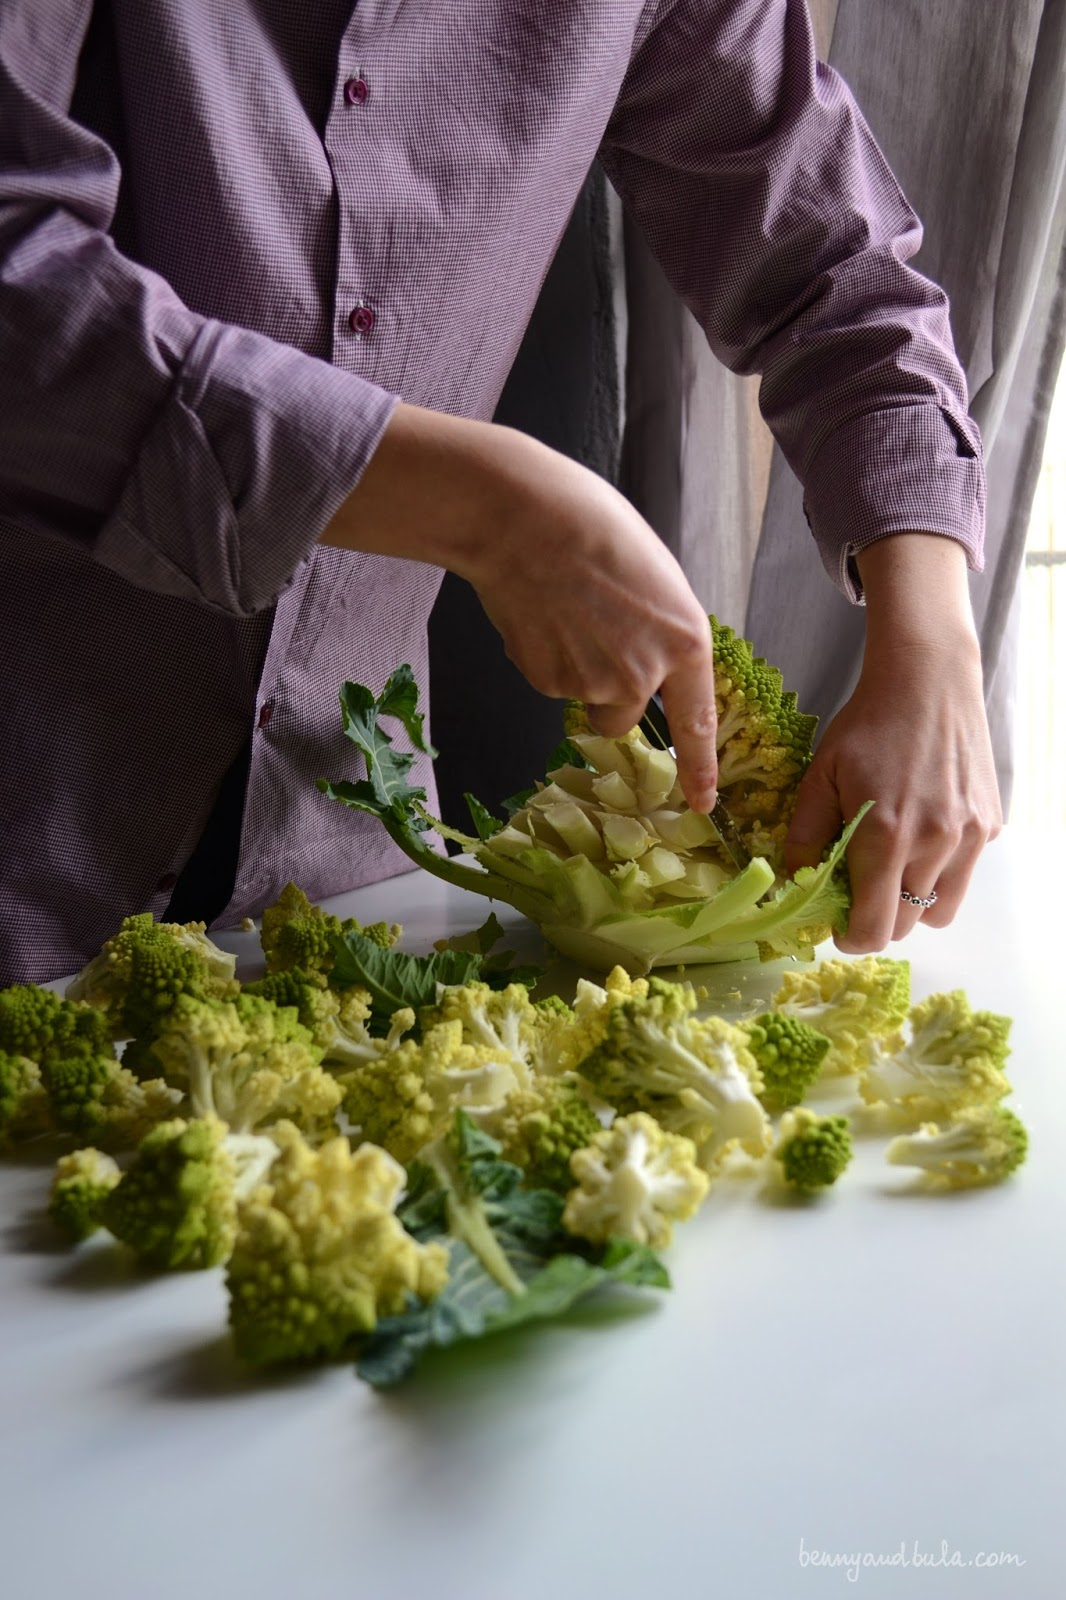 come pulire e cuocere il broccolo romanesco/ how to trim and cook roman cauliflower